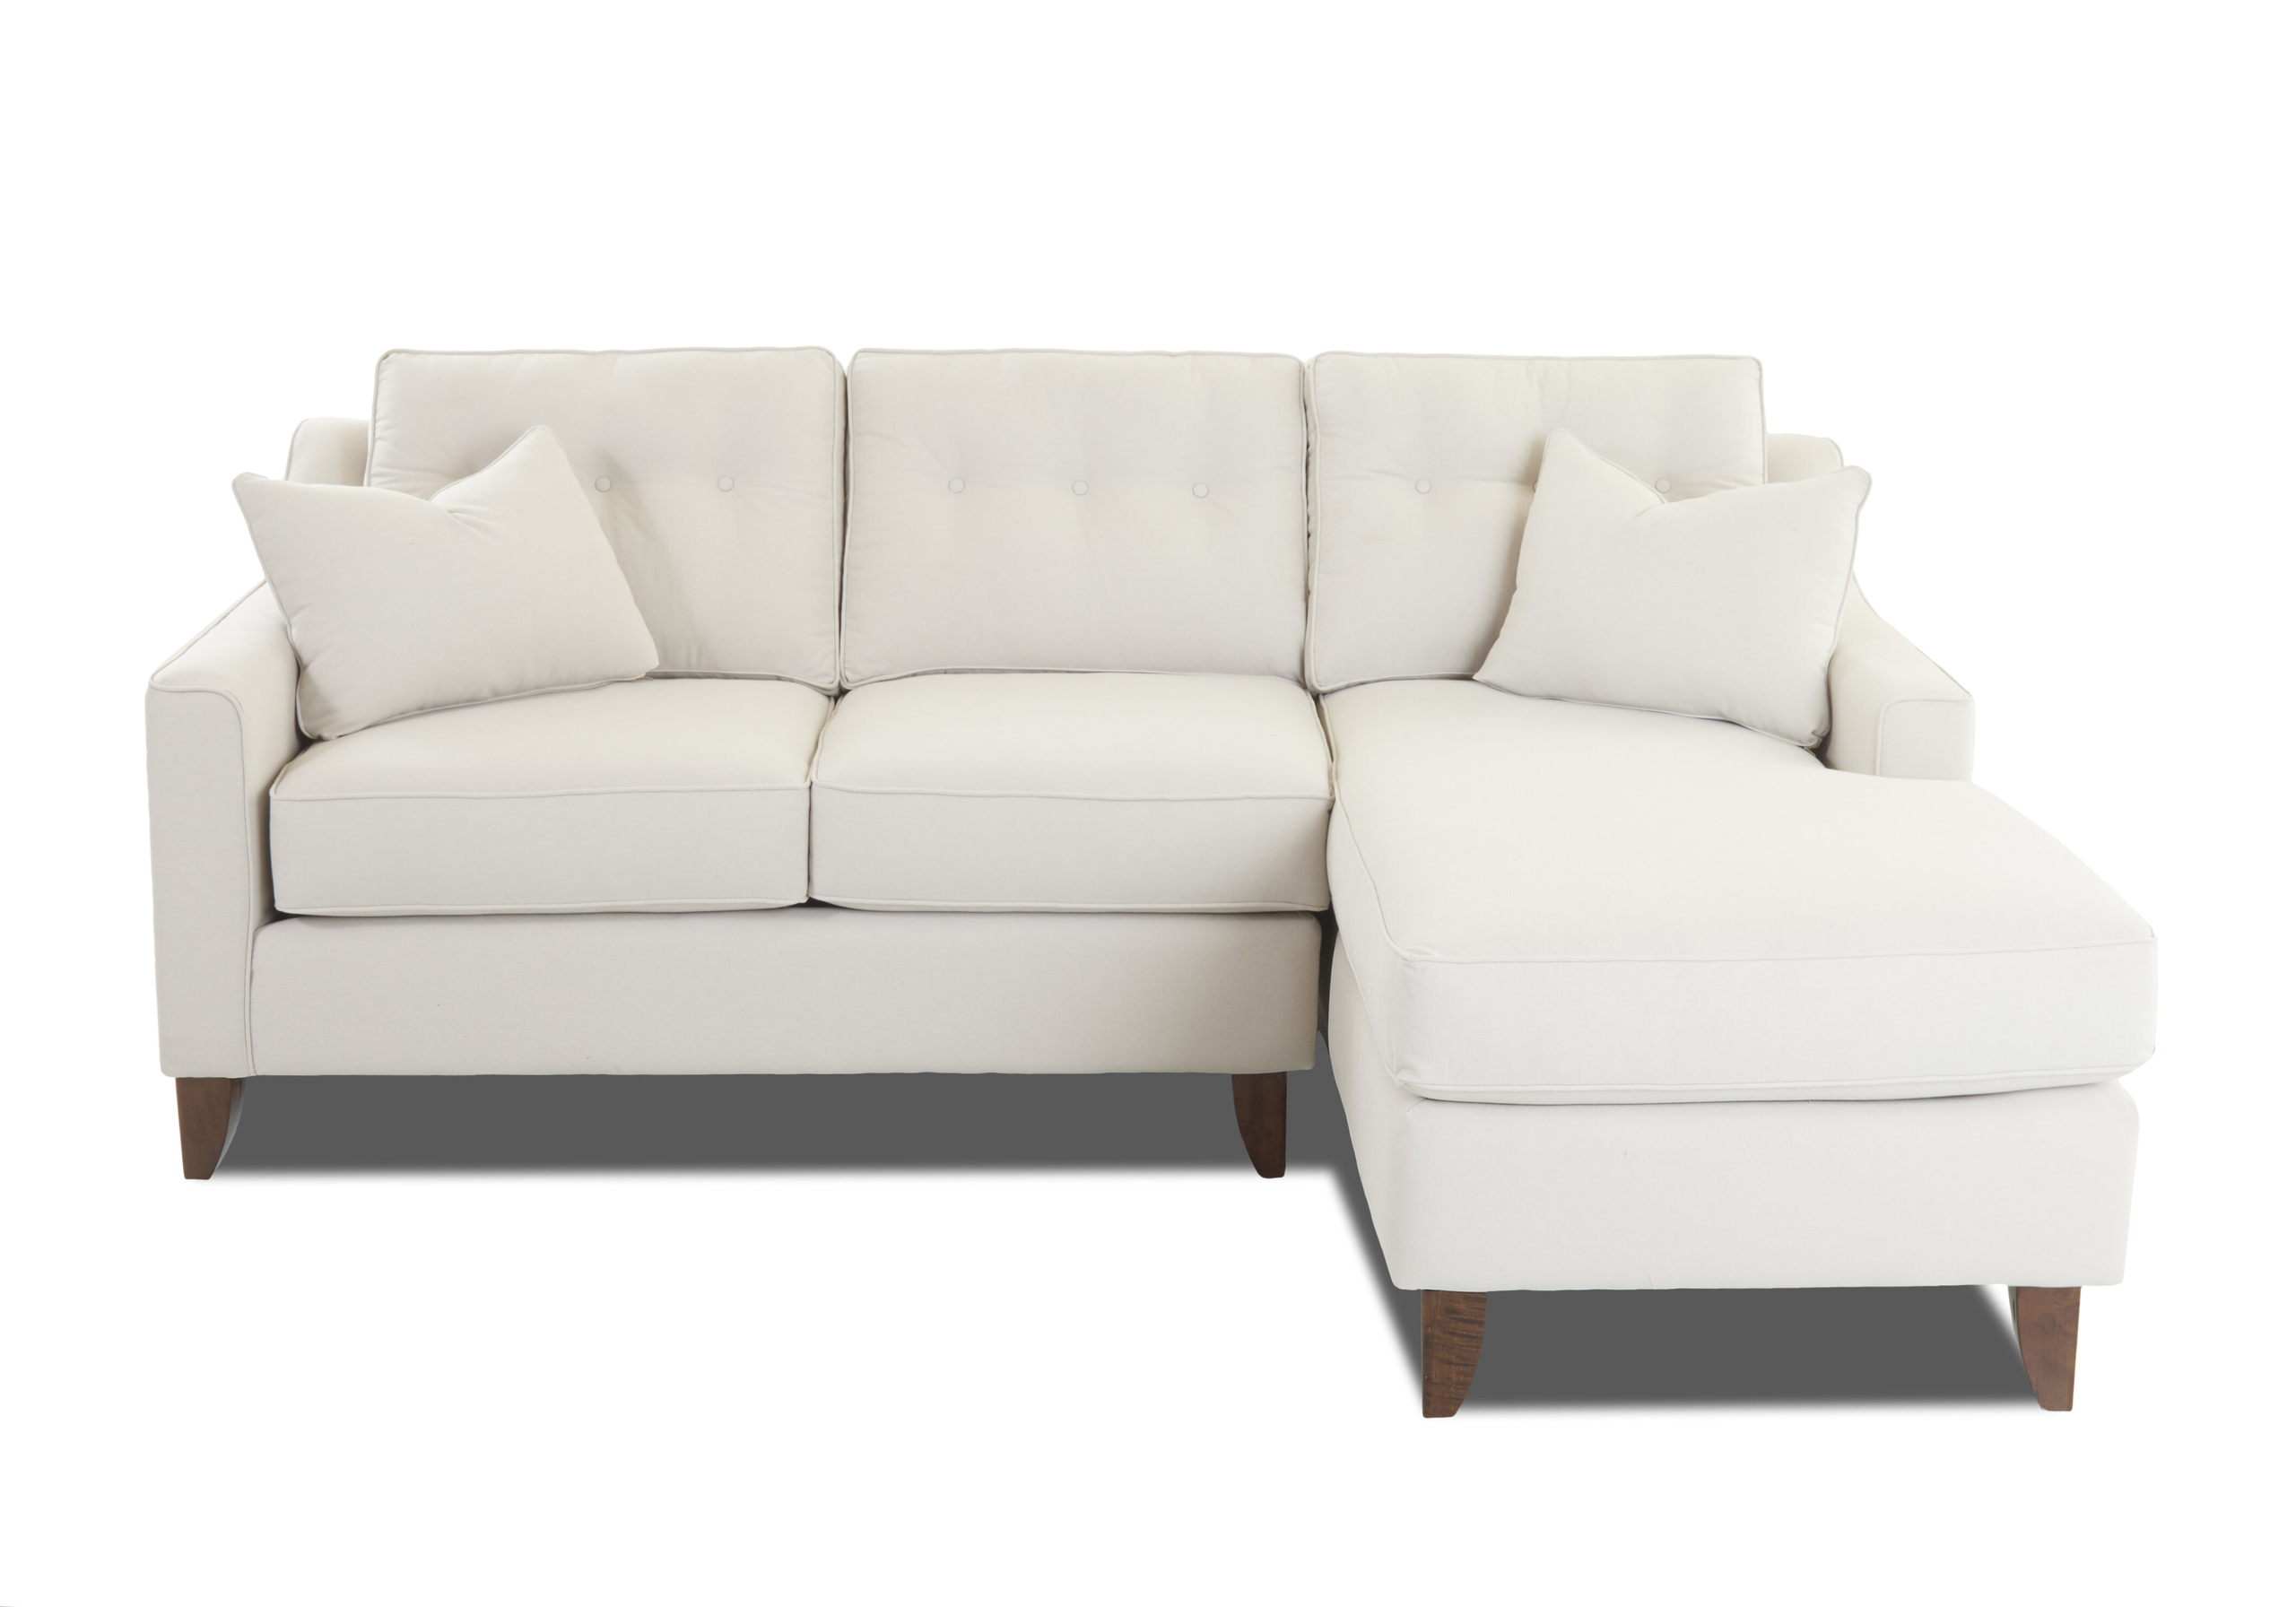 Prime Very Small Sectional Sofa Ideas On Foter Interior Design Ideas Gentotryabchikinfo